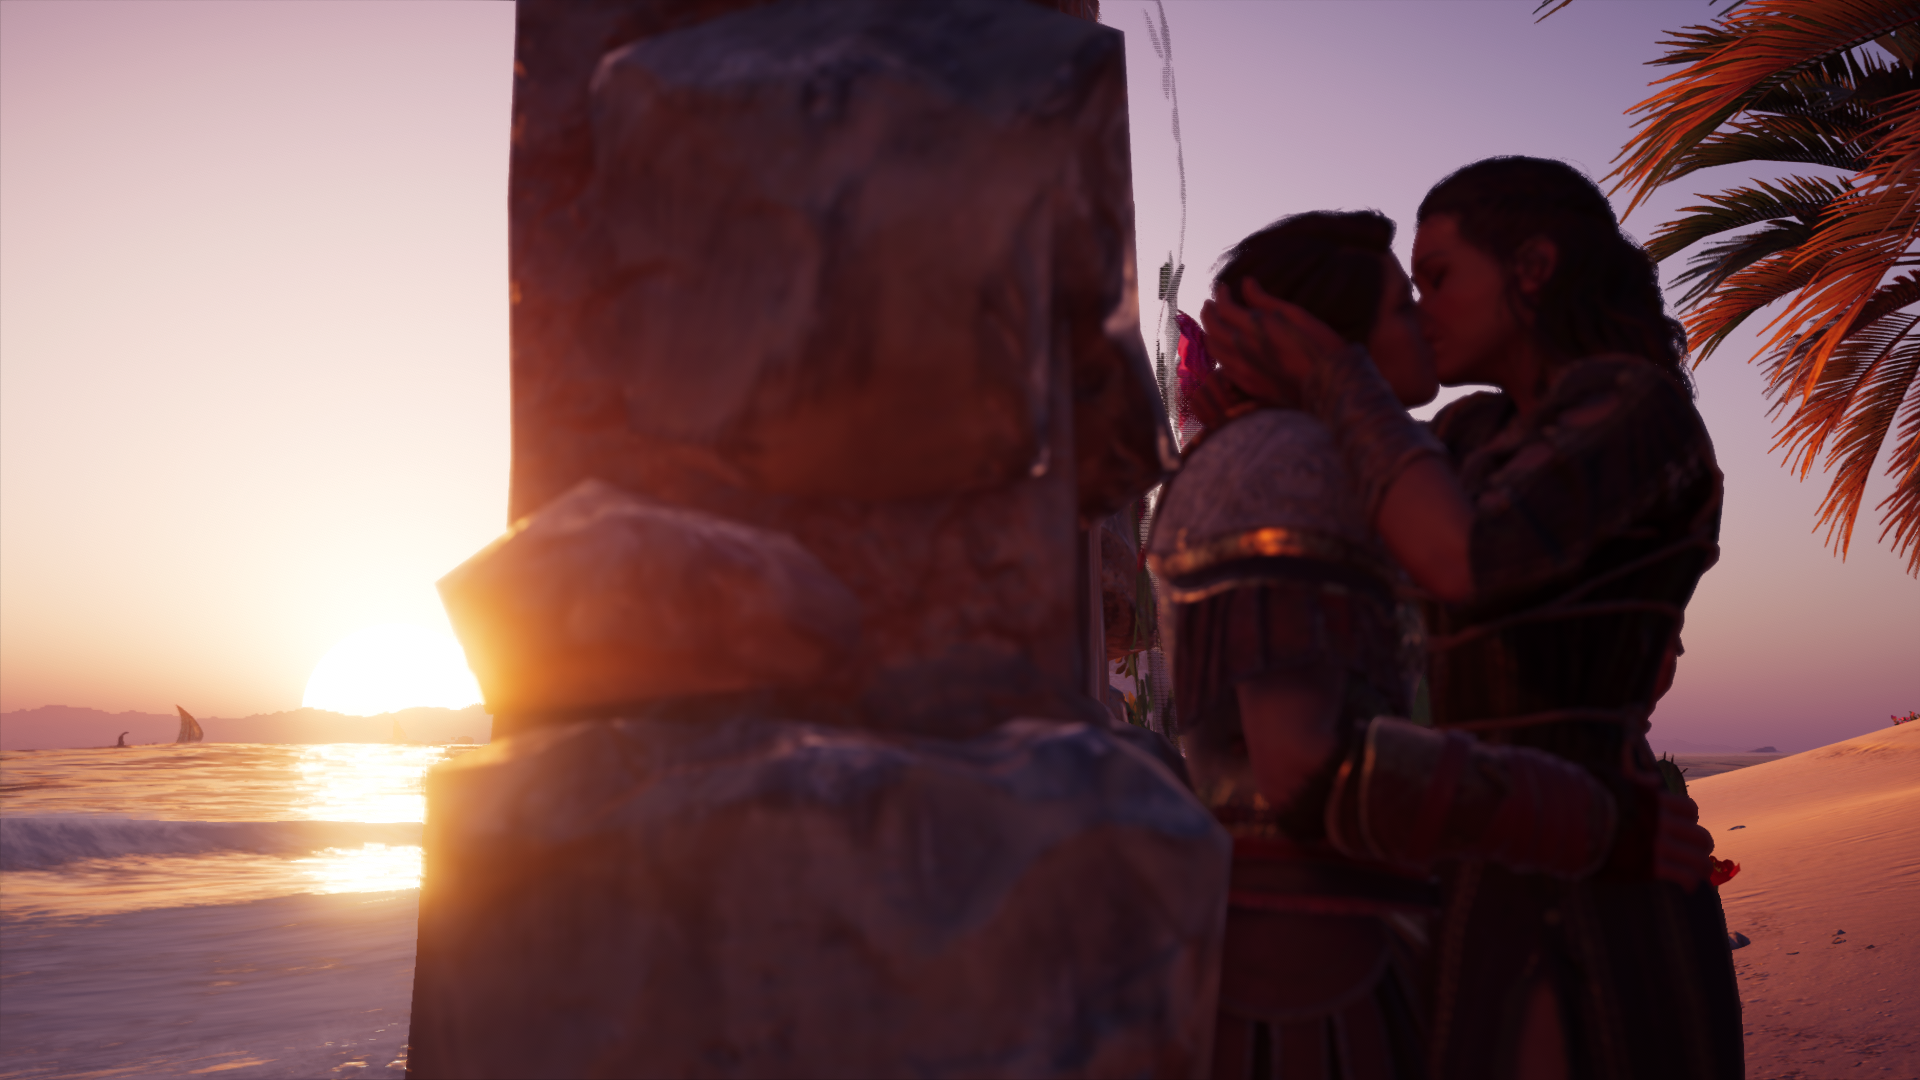 Assassin's Creed Odyssey Live Event Cancelled, NPC 'Damais' Did a Runner